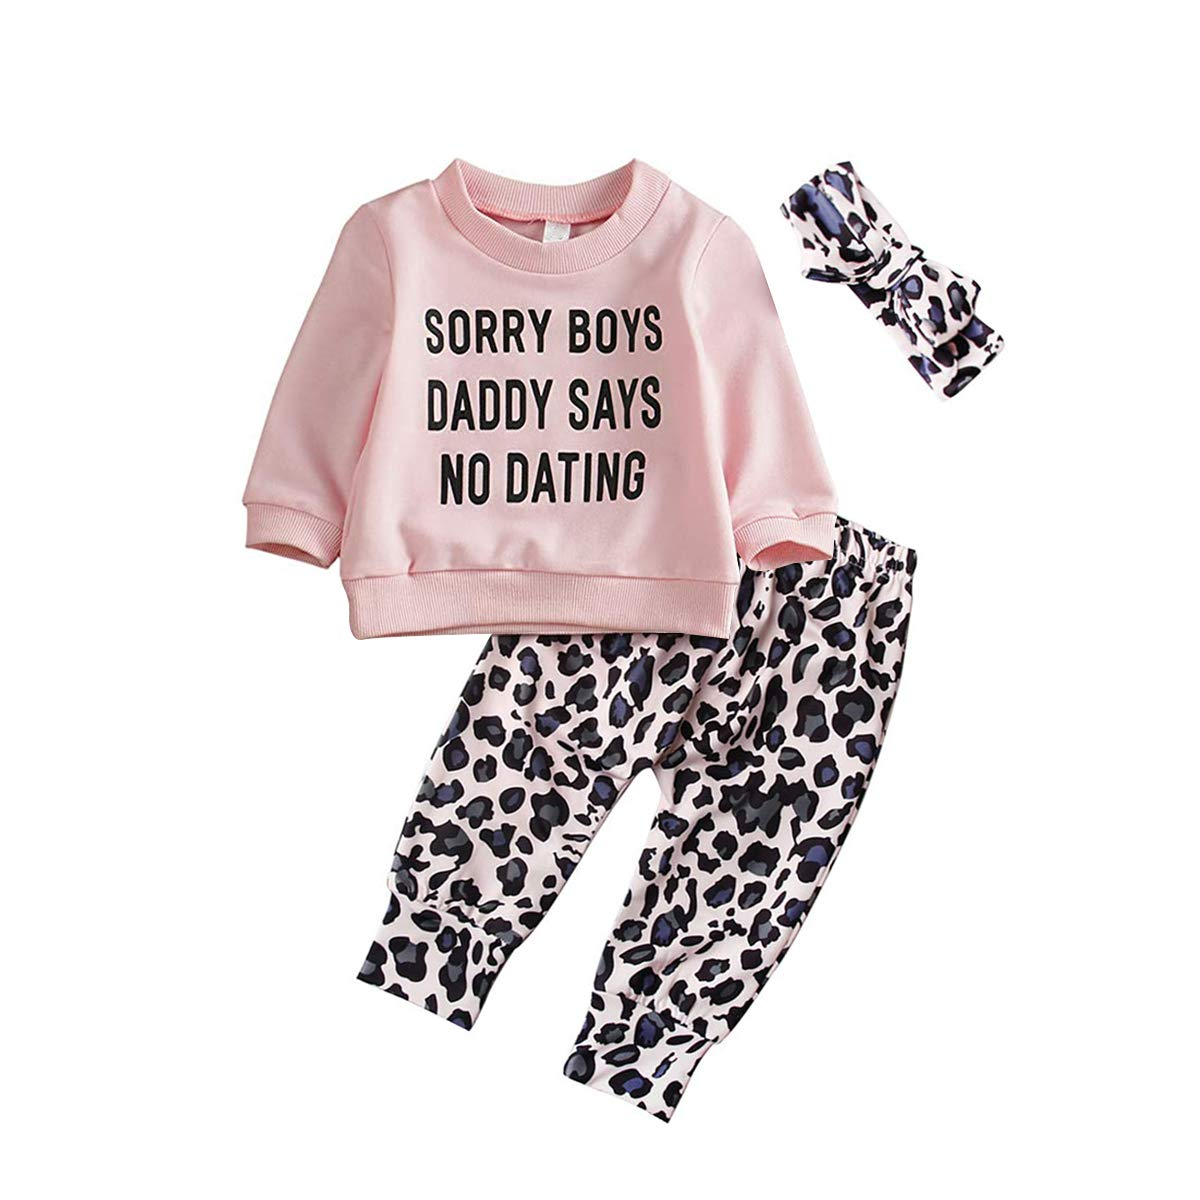 Newborn Baby Girls Clothes Daddy Saying Top Printed T-Shirt Leopard Pants+Headband Sweatshirt Outfit Set